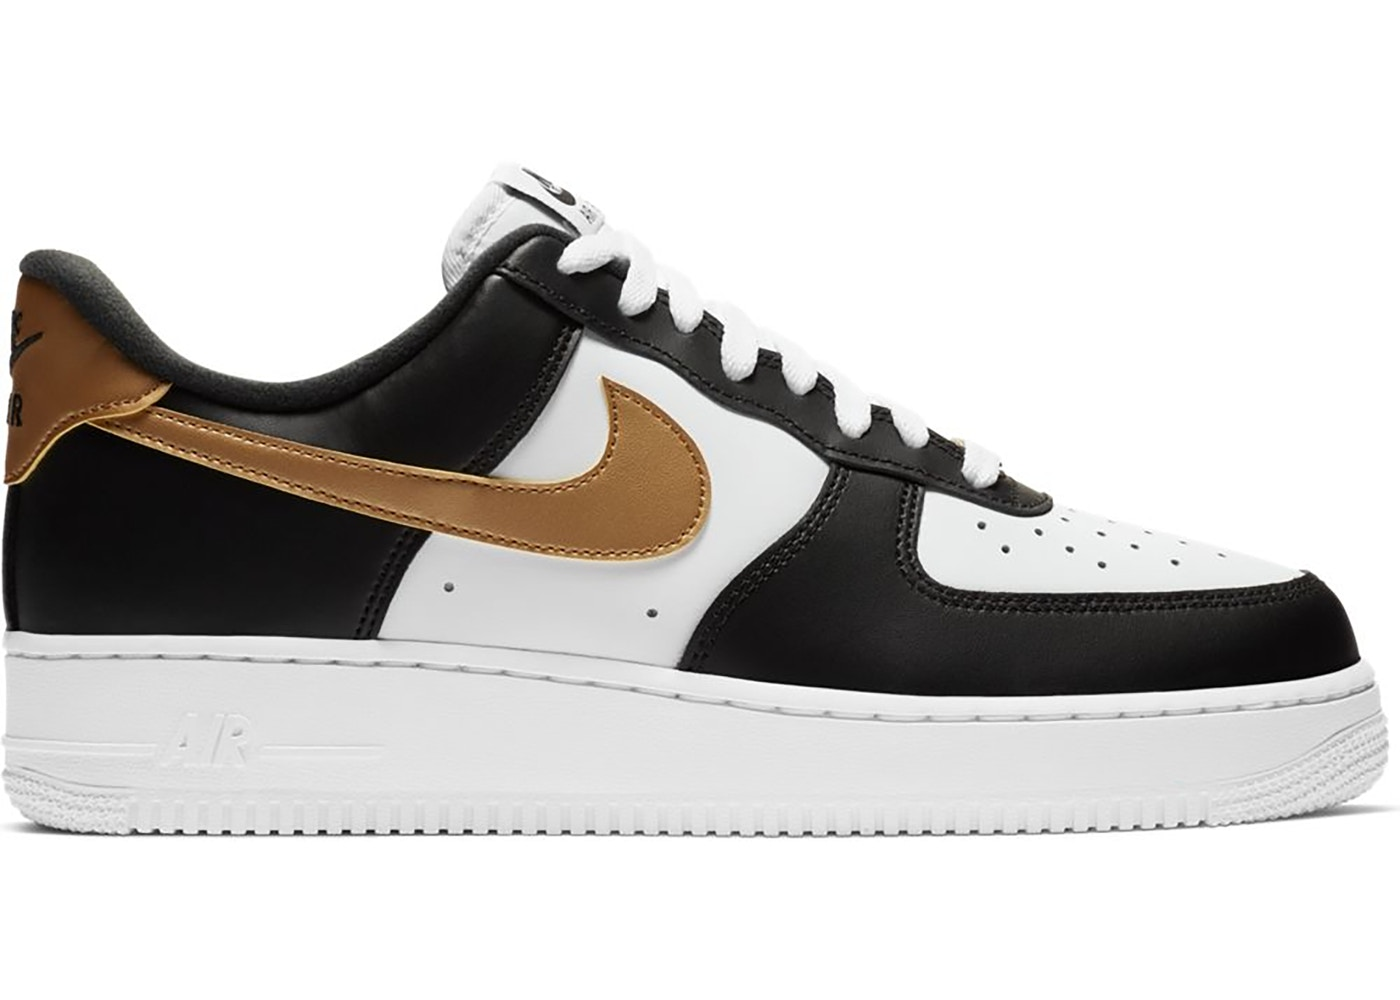 Nike Air Force 1 Low Black White Metallic Gold Cz9189 001